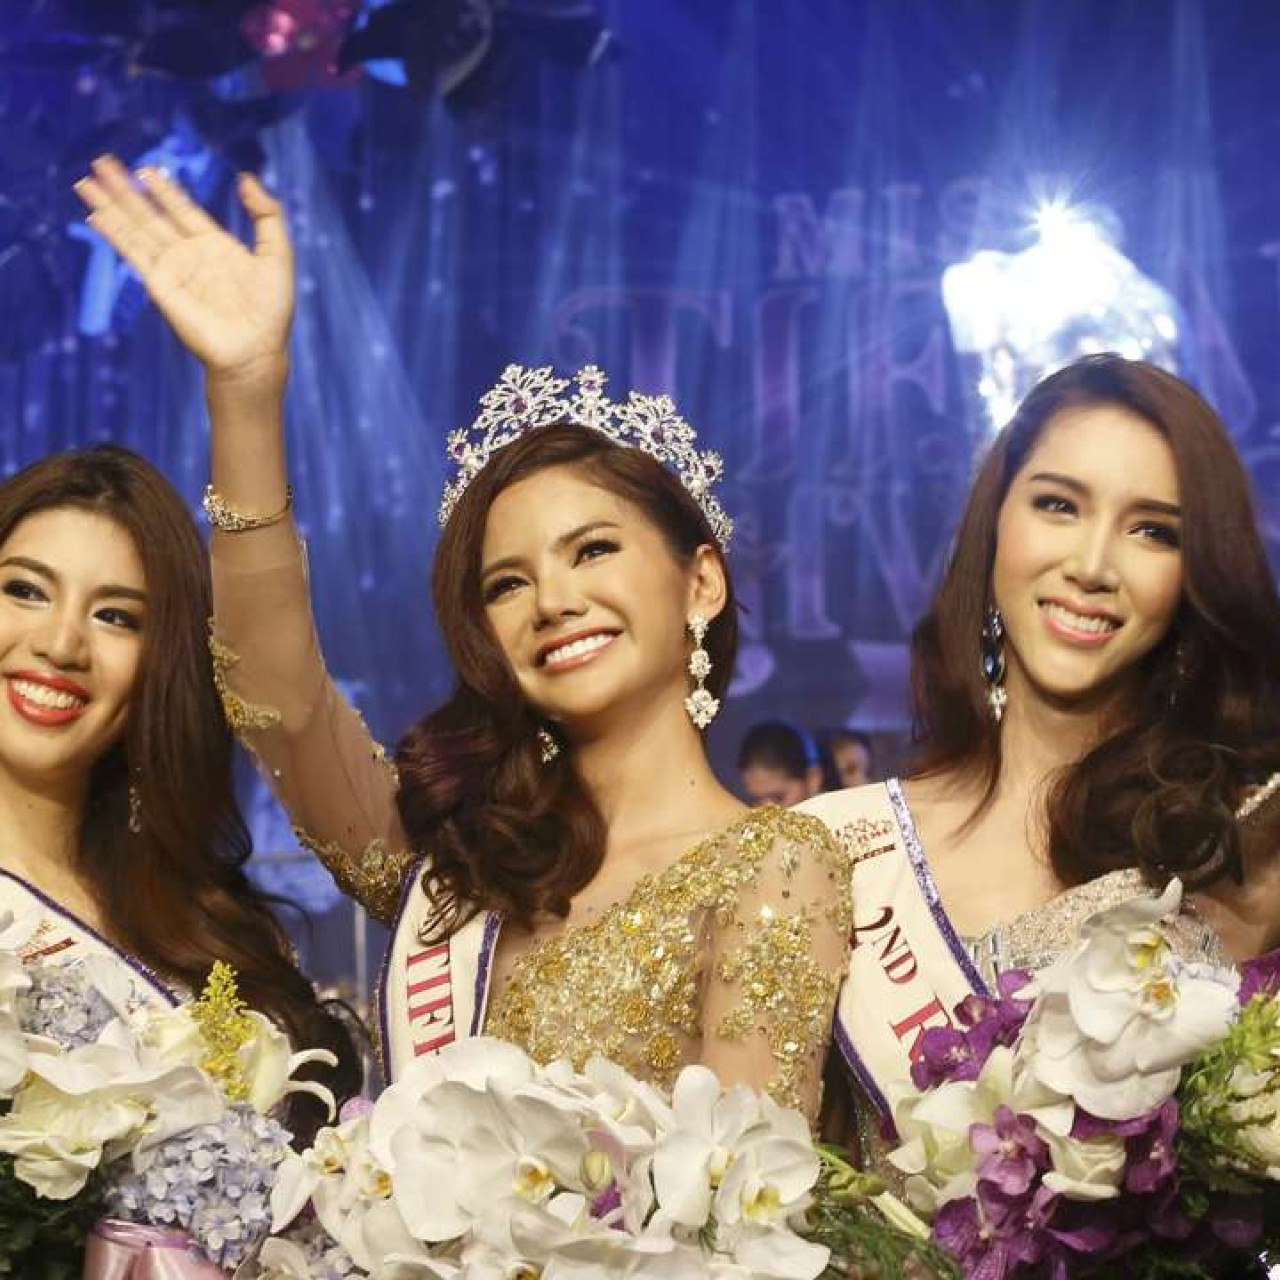 How starring in Miss Tiffany's pageant show can change a Thai trans